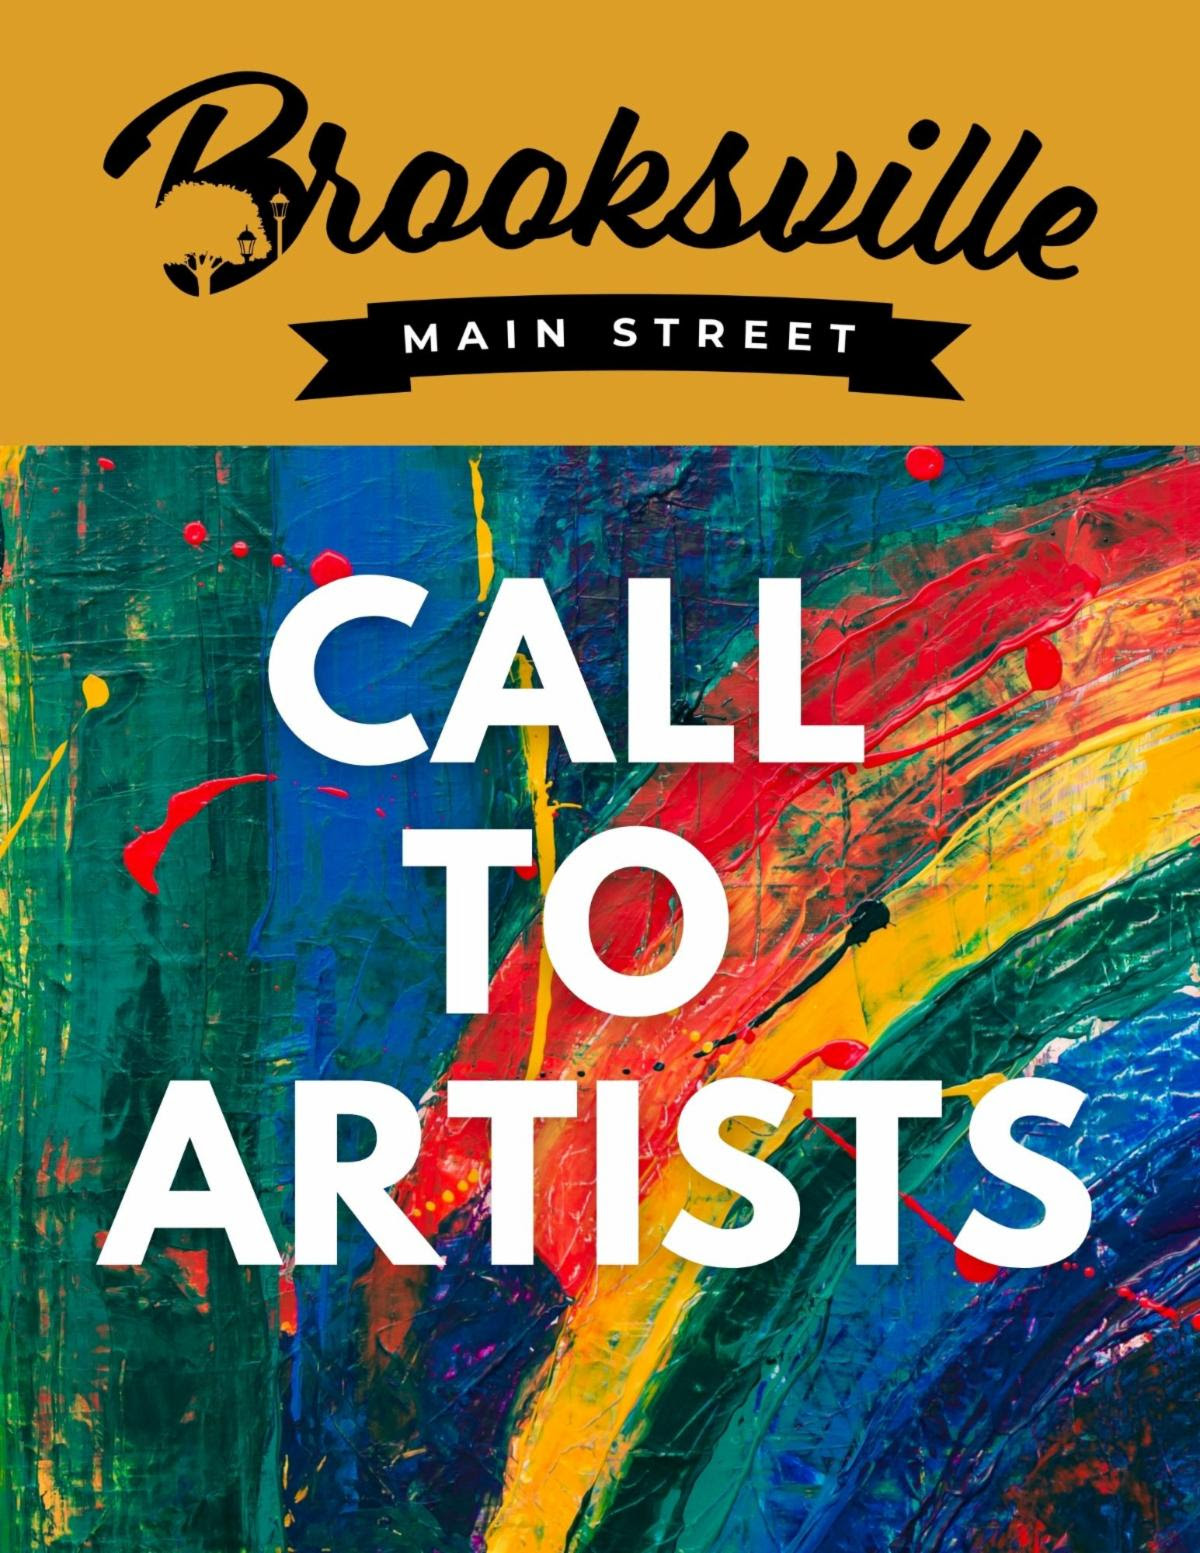 There are a few projects in need of artists with murals. You can find the information for these Brooksville murals below.